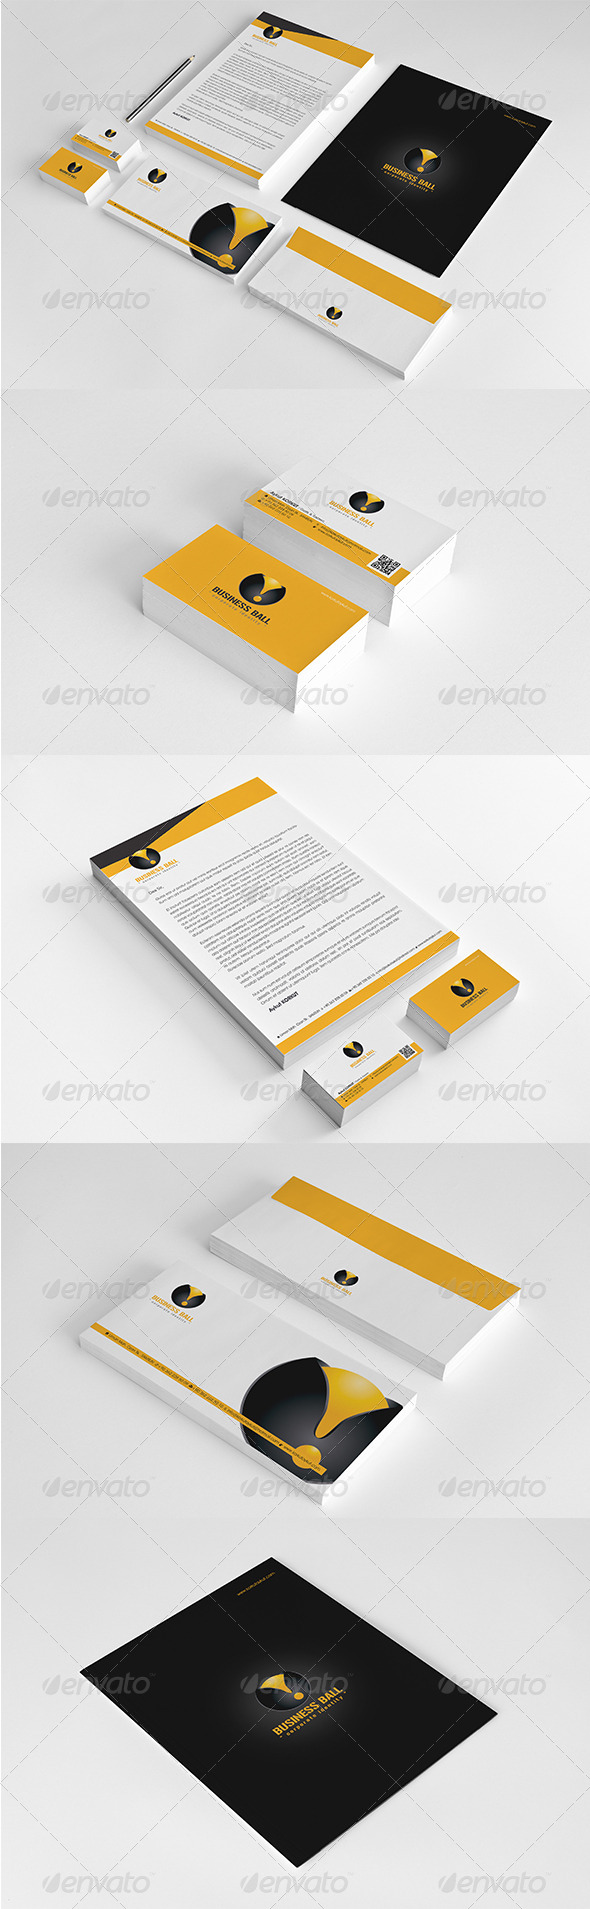 Business Ball Corporate Identity Package  - Stationery Print Templates